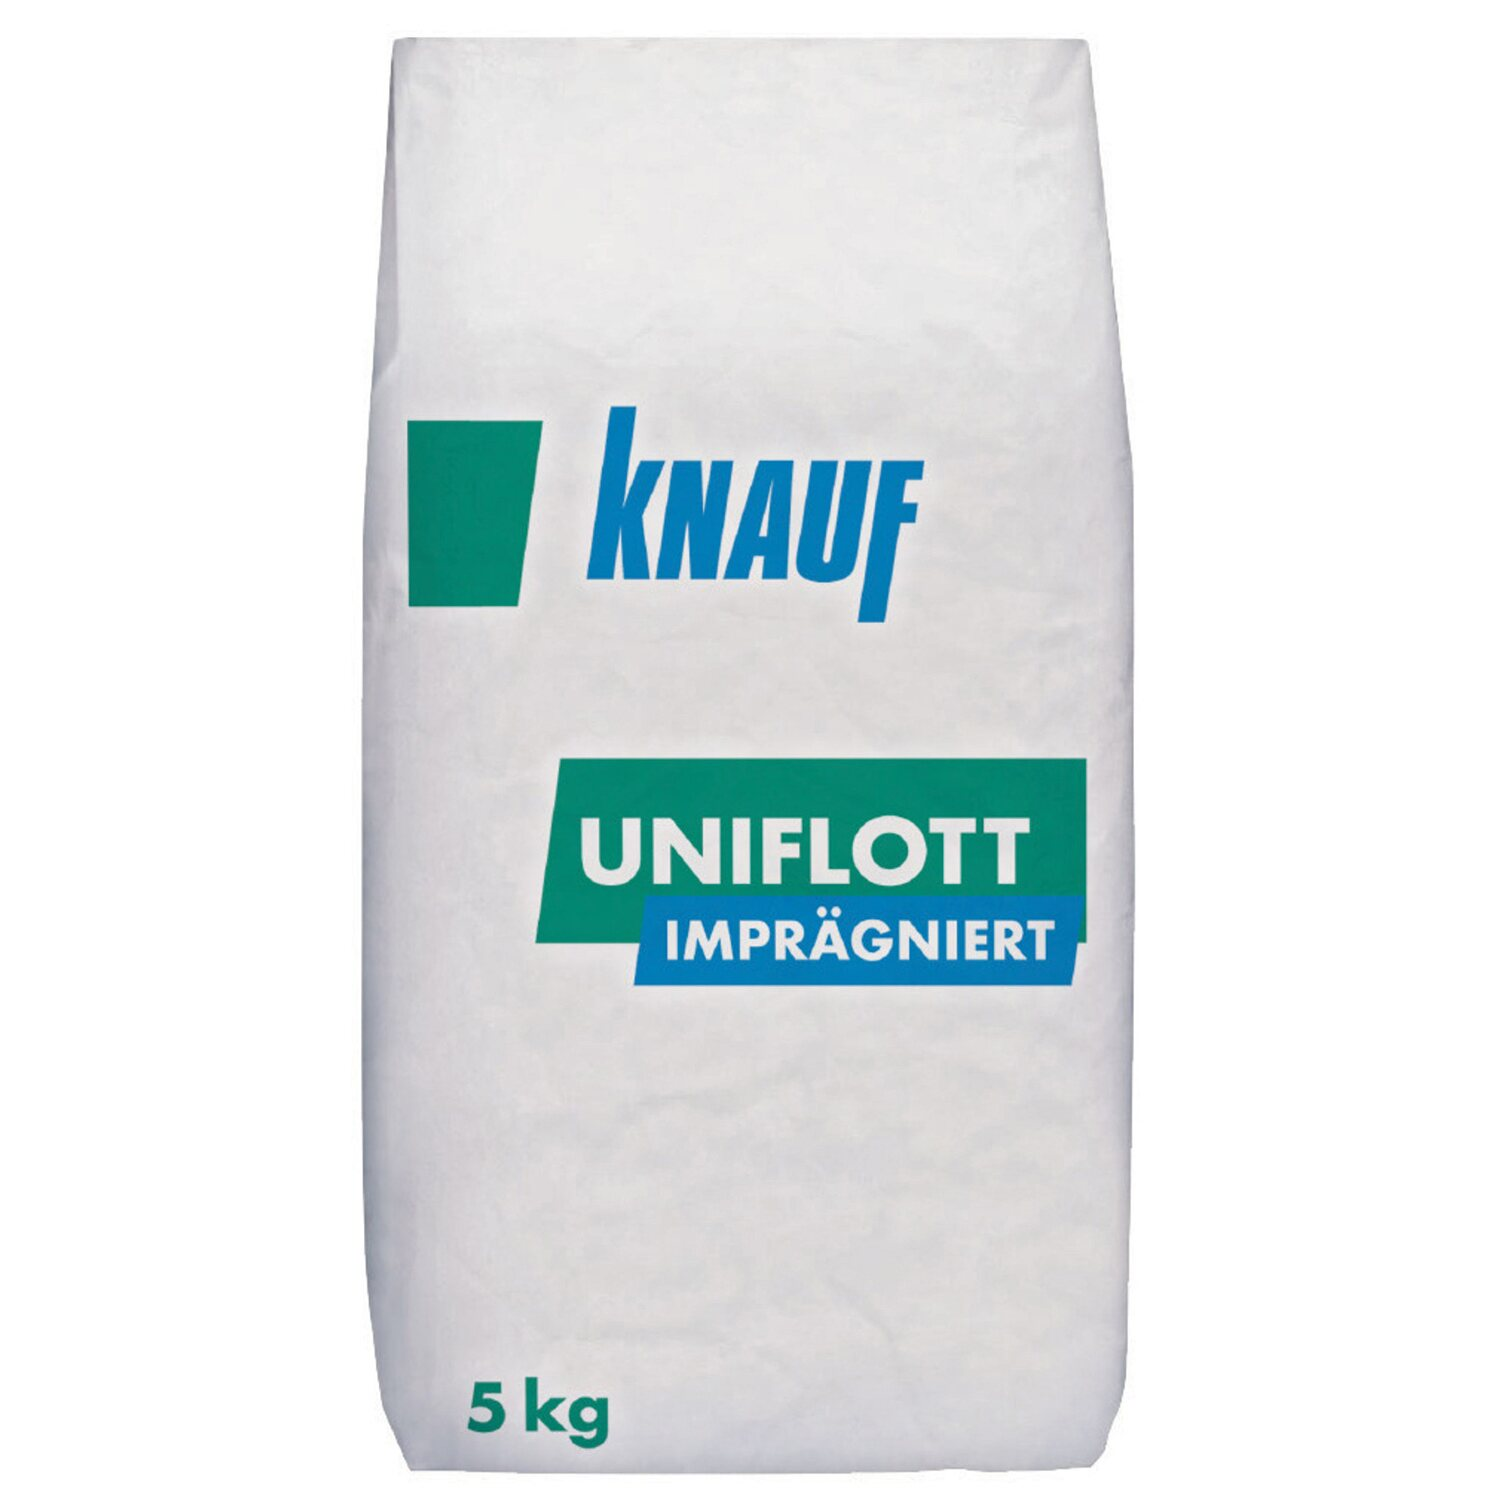 knauf uniflott fugenspachtel impr gniert 5 kg kaufen bei obi. Black Bedroom Furniture Sets. Home Design Ideas